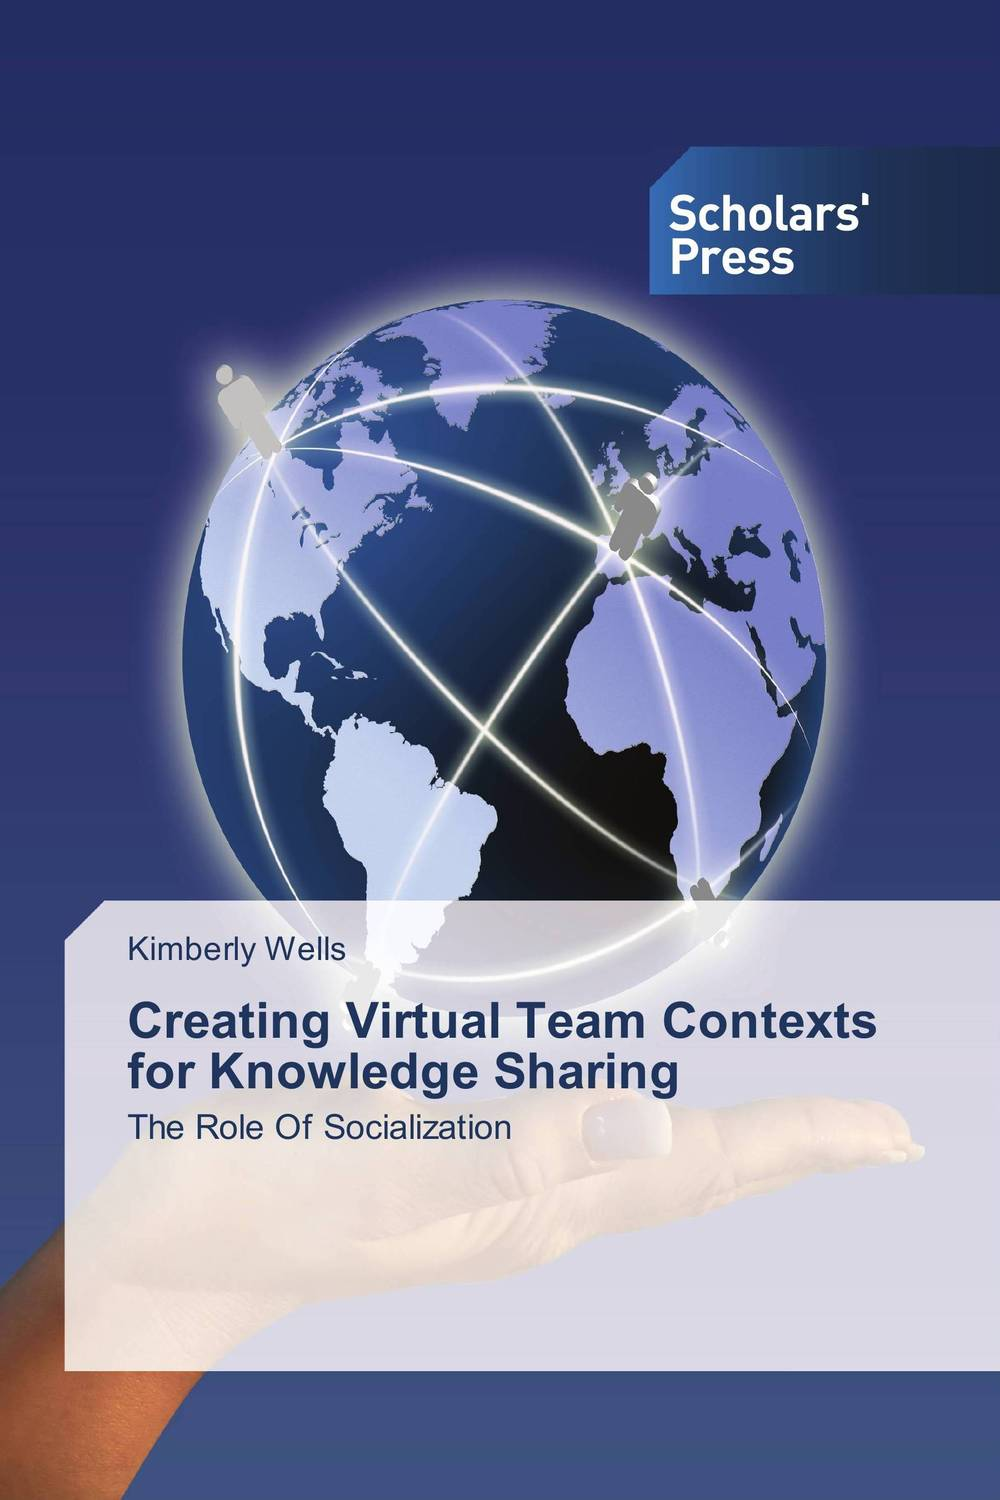 Creating Virtual Team Contexts for Knowledge Sharing